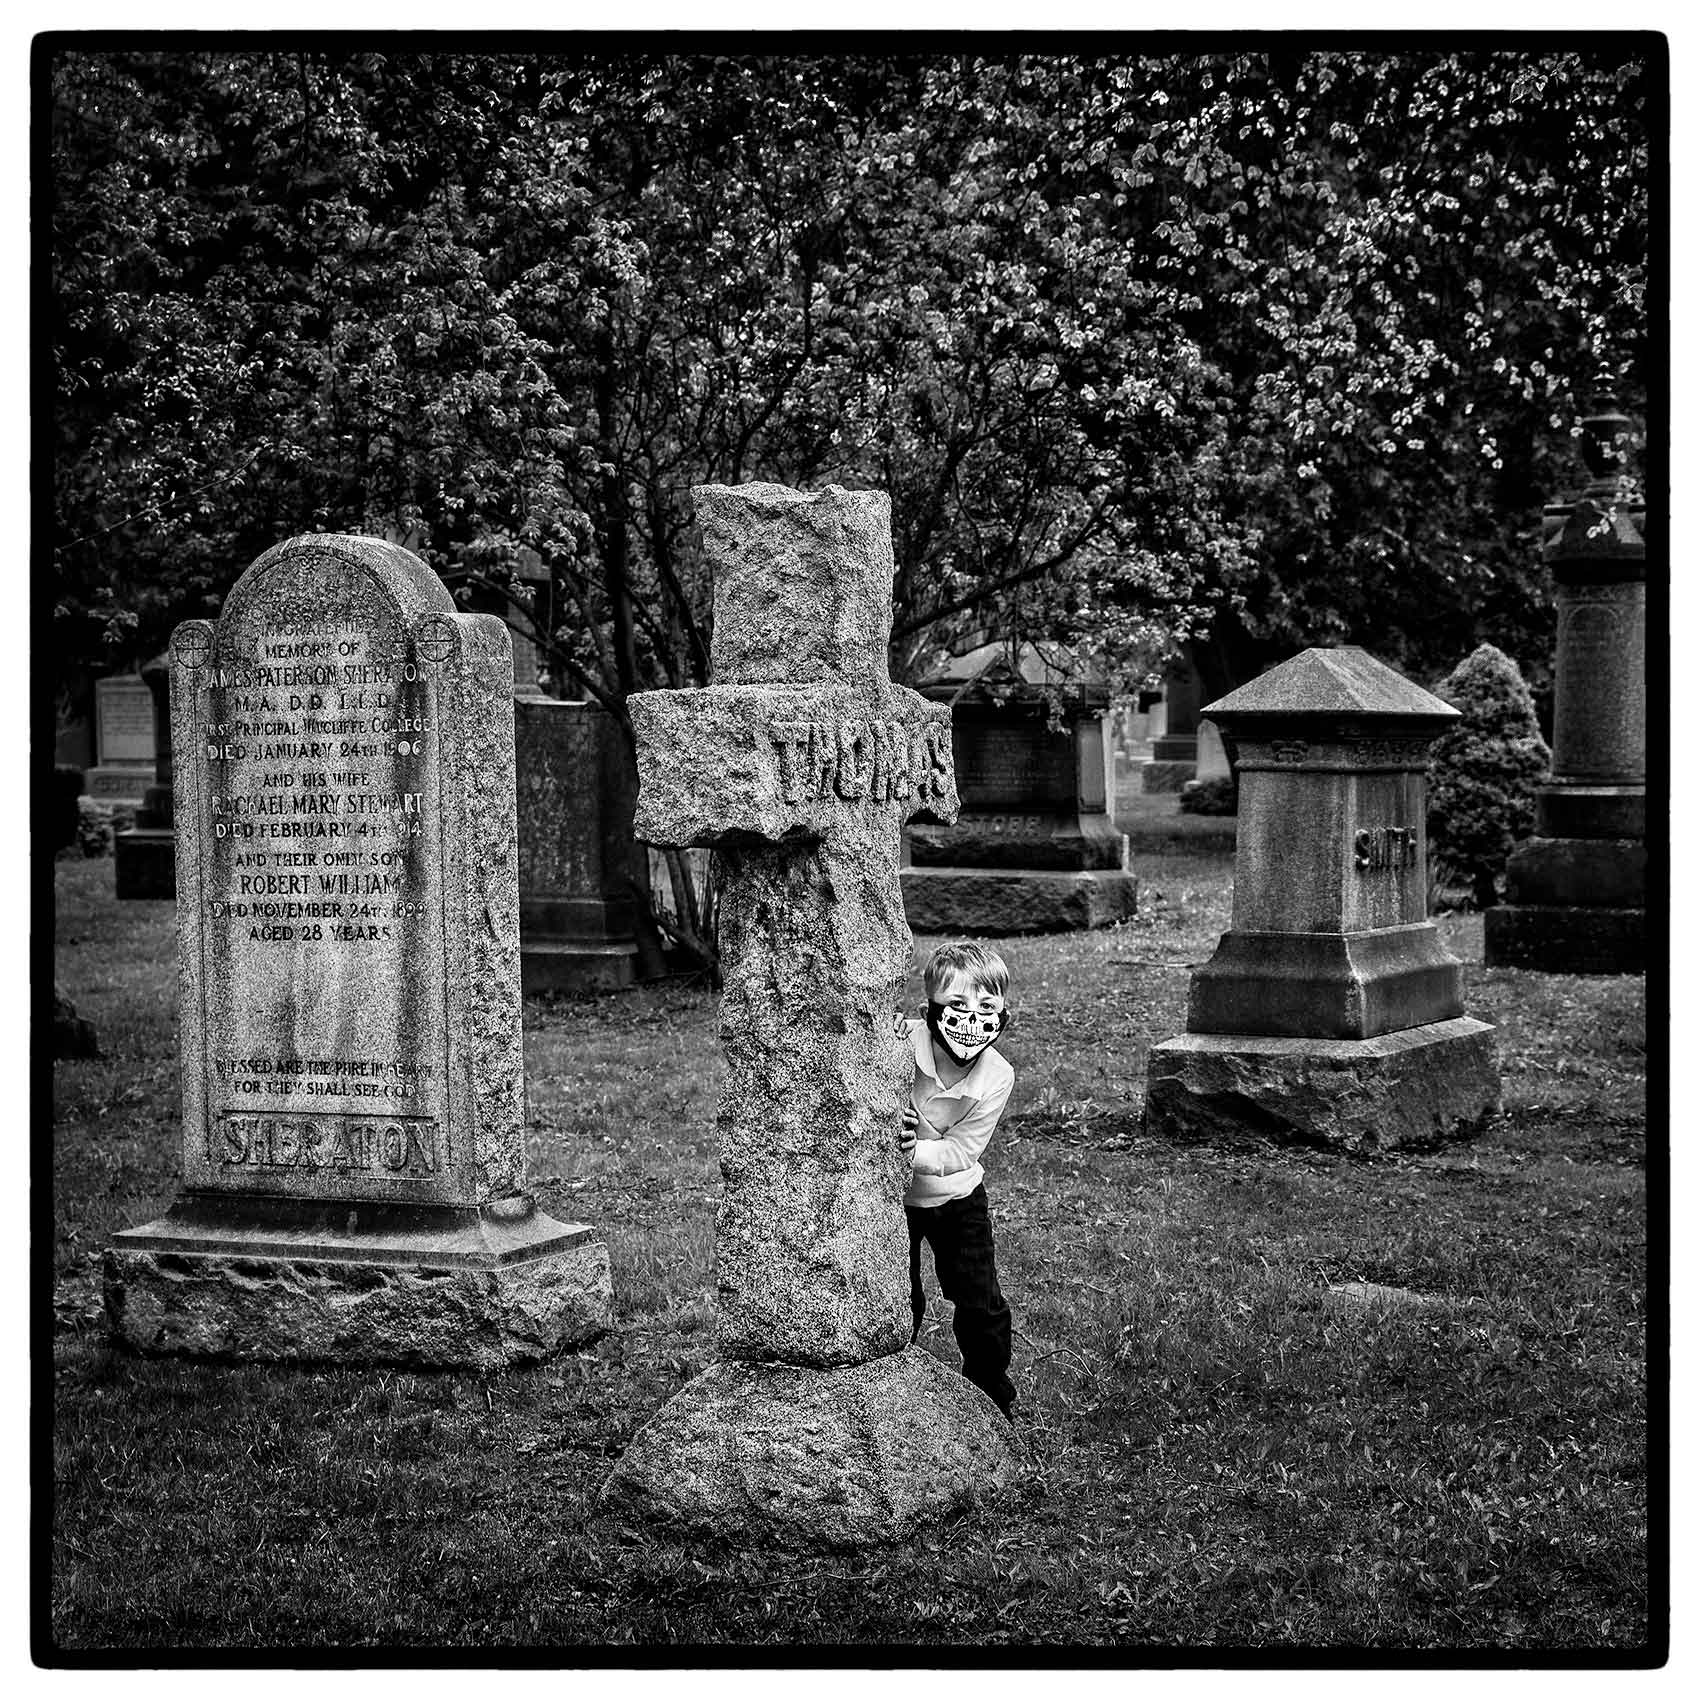 a-boy-in-skull-and-bones-mask-in-a-toronto-cemetery-by-award-winning-toronto-photographer